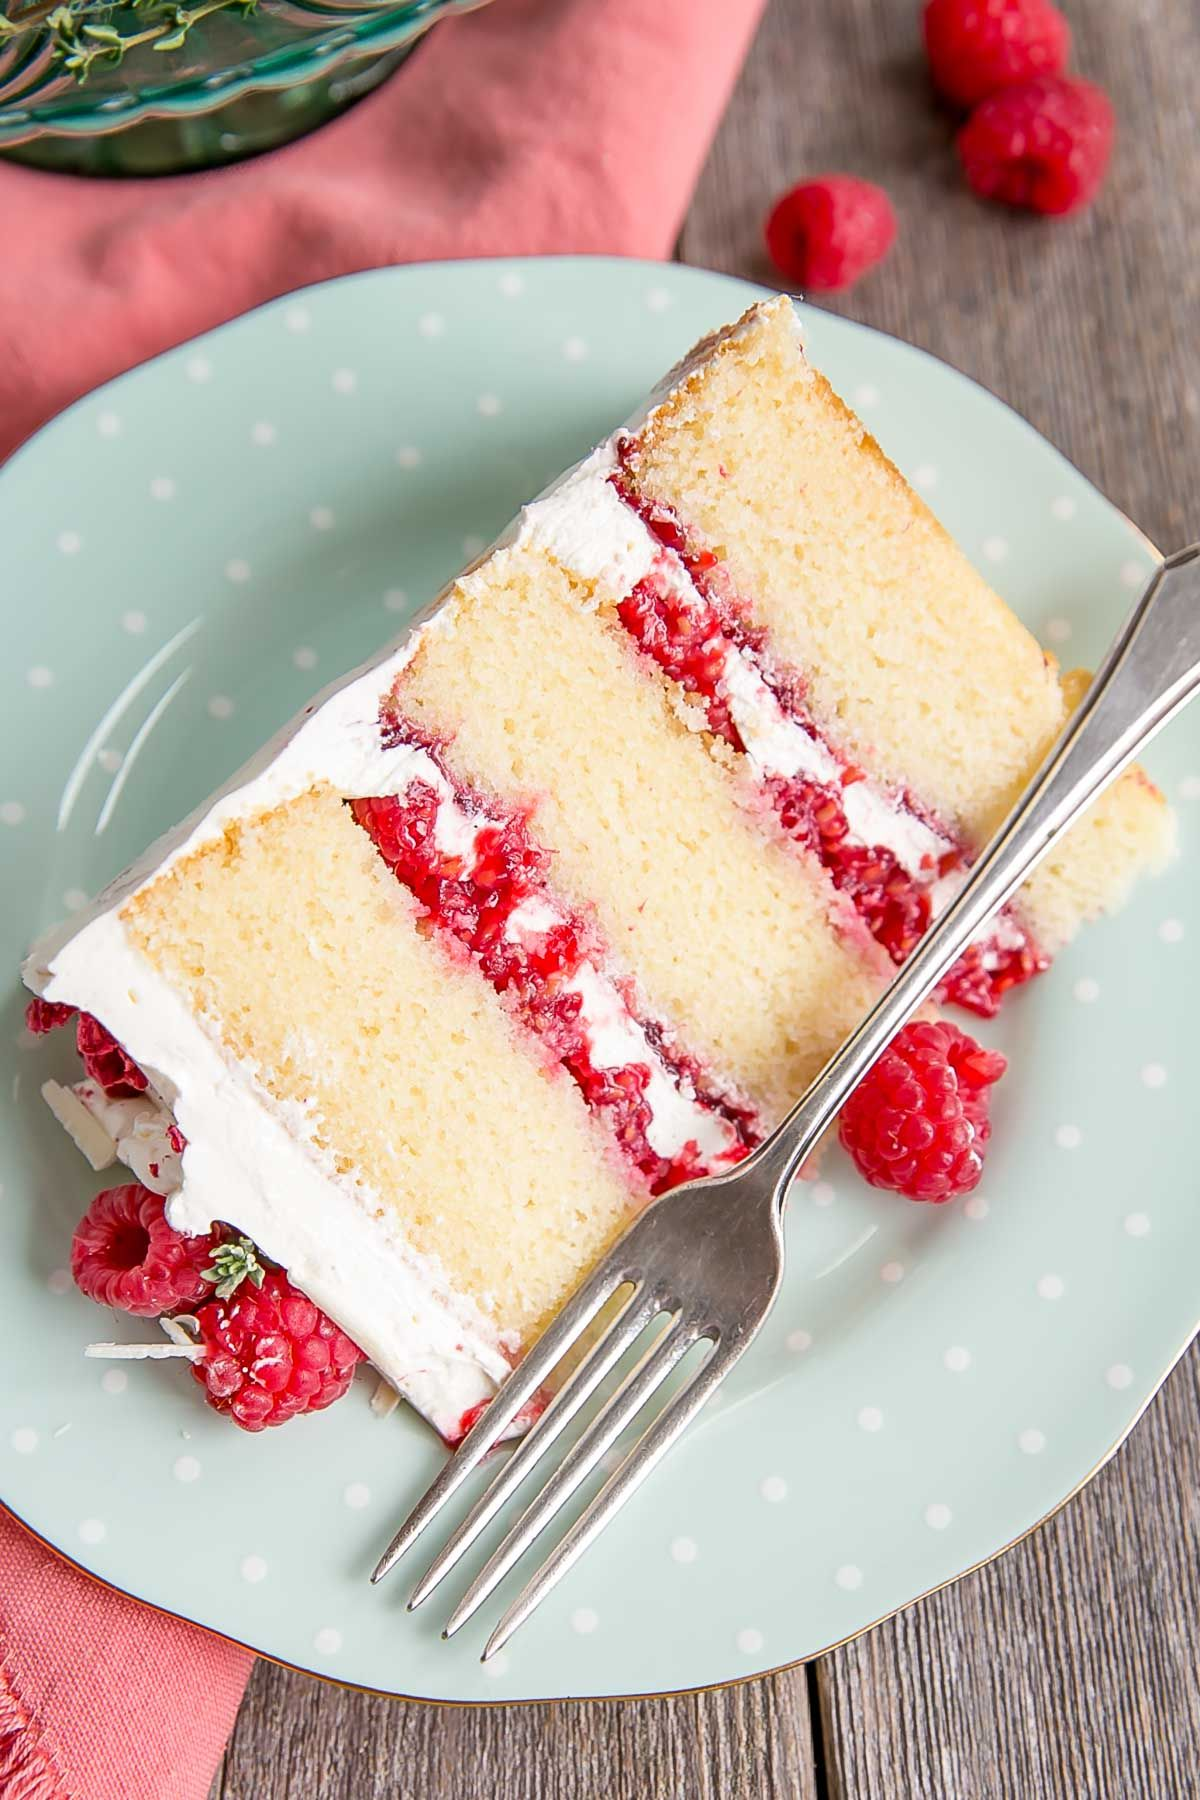 This White Chocolate Raspberry Cake Combines White